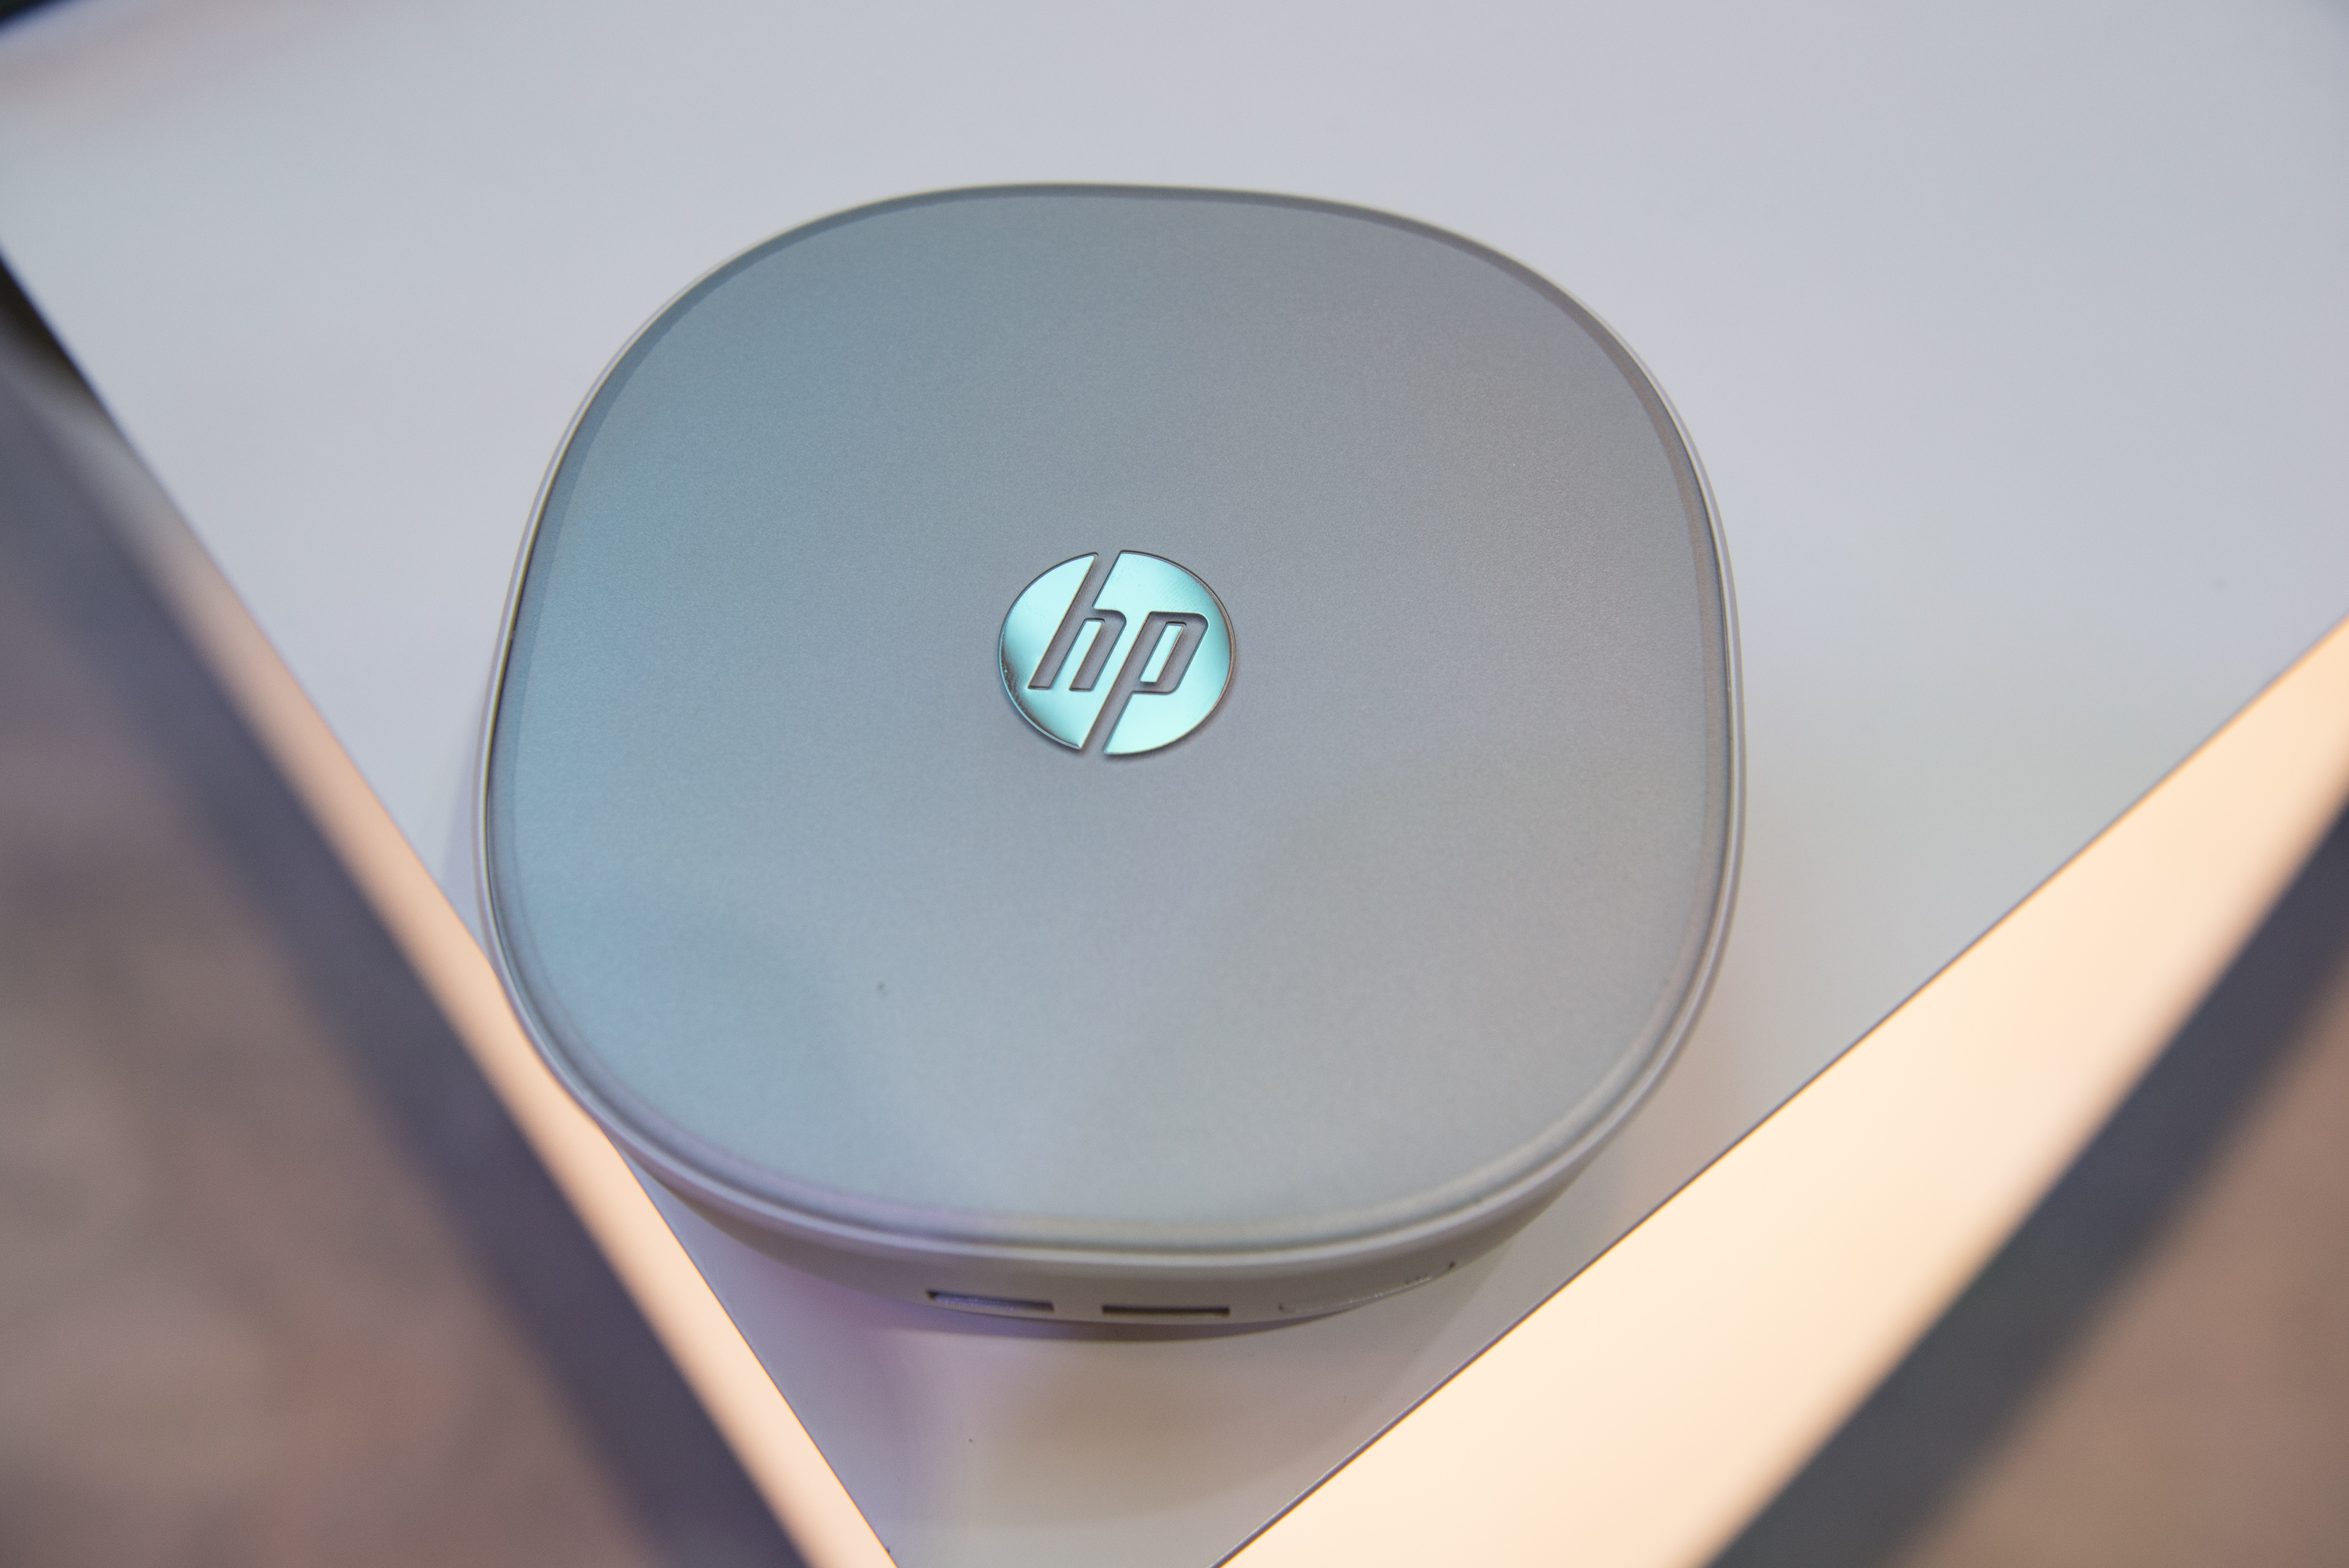 The Hewlett-Packard Co. (HP) Pavillion Mini Desktop computer is displayed at the 2015 Consumer Electronics Show (CES) on Jan. 8, 2015.